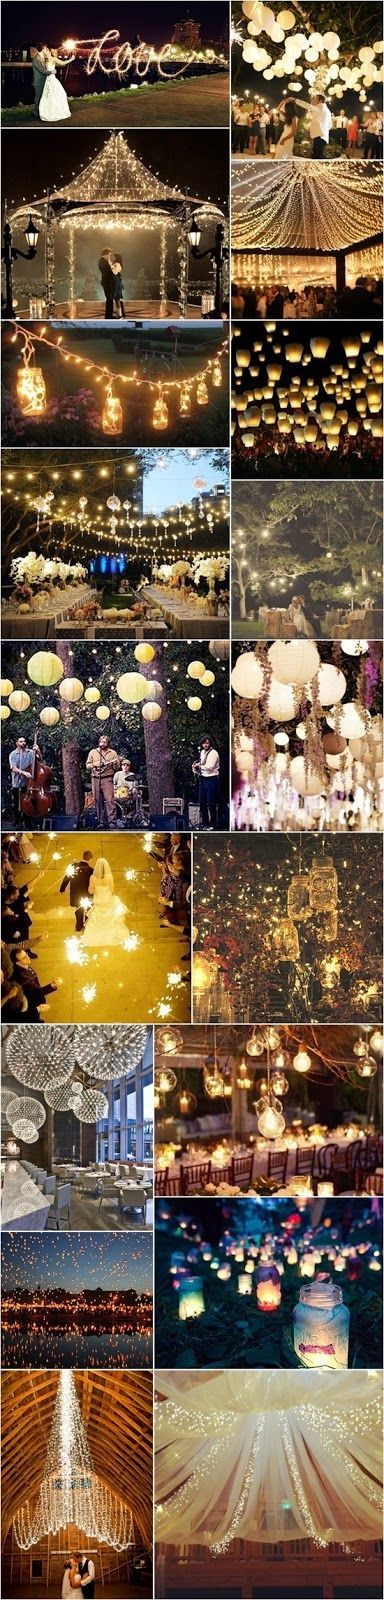 I love the balloon lights and the mason jar lights...so perfect for an autumn outdoor wedding :)